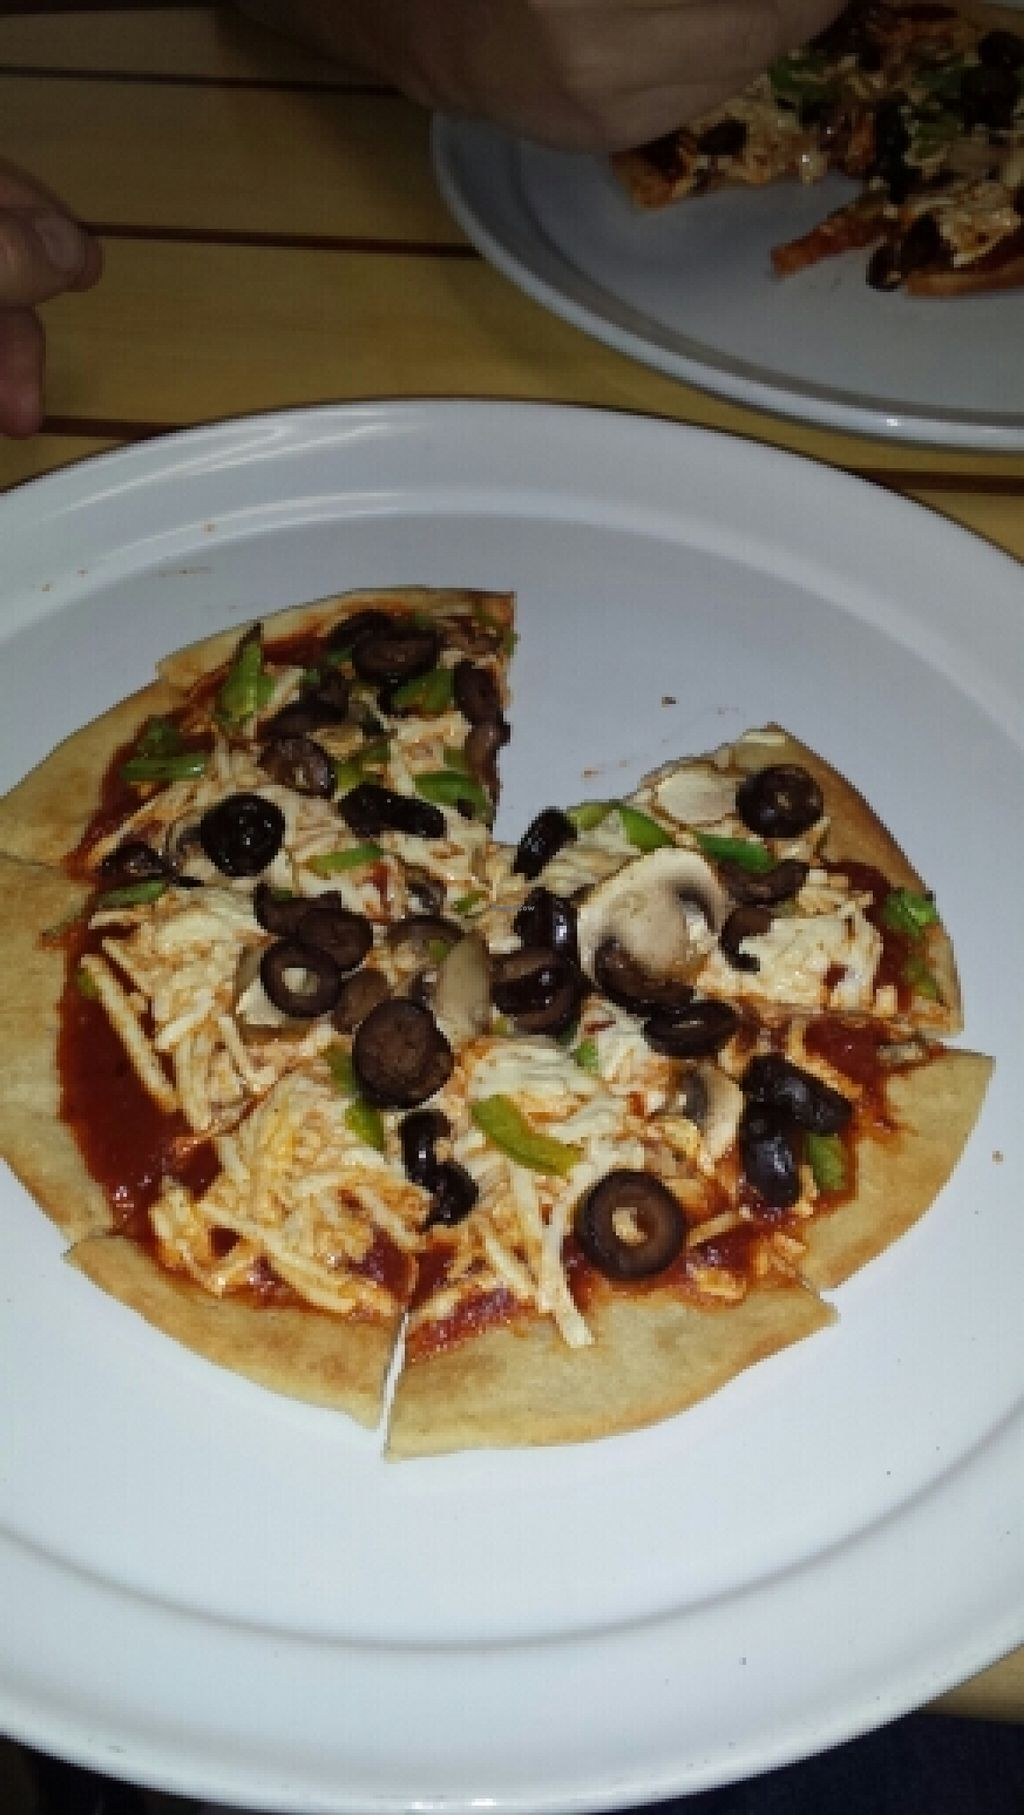 """Photo of Pure Healing Foods  by <a href=""""/members/profile/horseleach"""">horseleach</a> <br/>Vegan Pizzas <br/> February 10, 2016  - <a href='/contact/abuse/image/37999/135760'>Report</a>"""